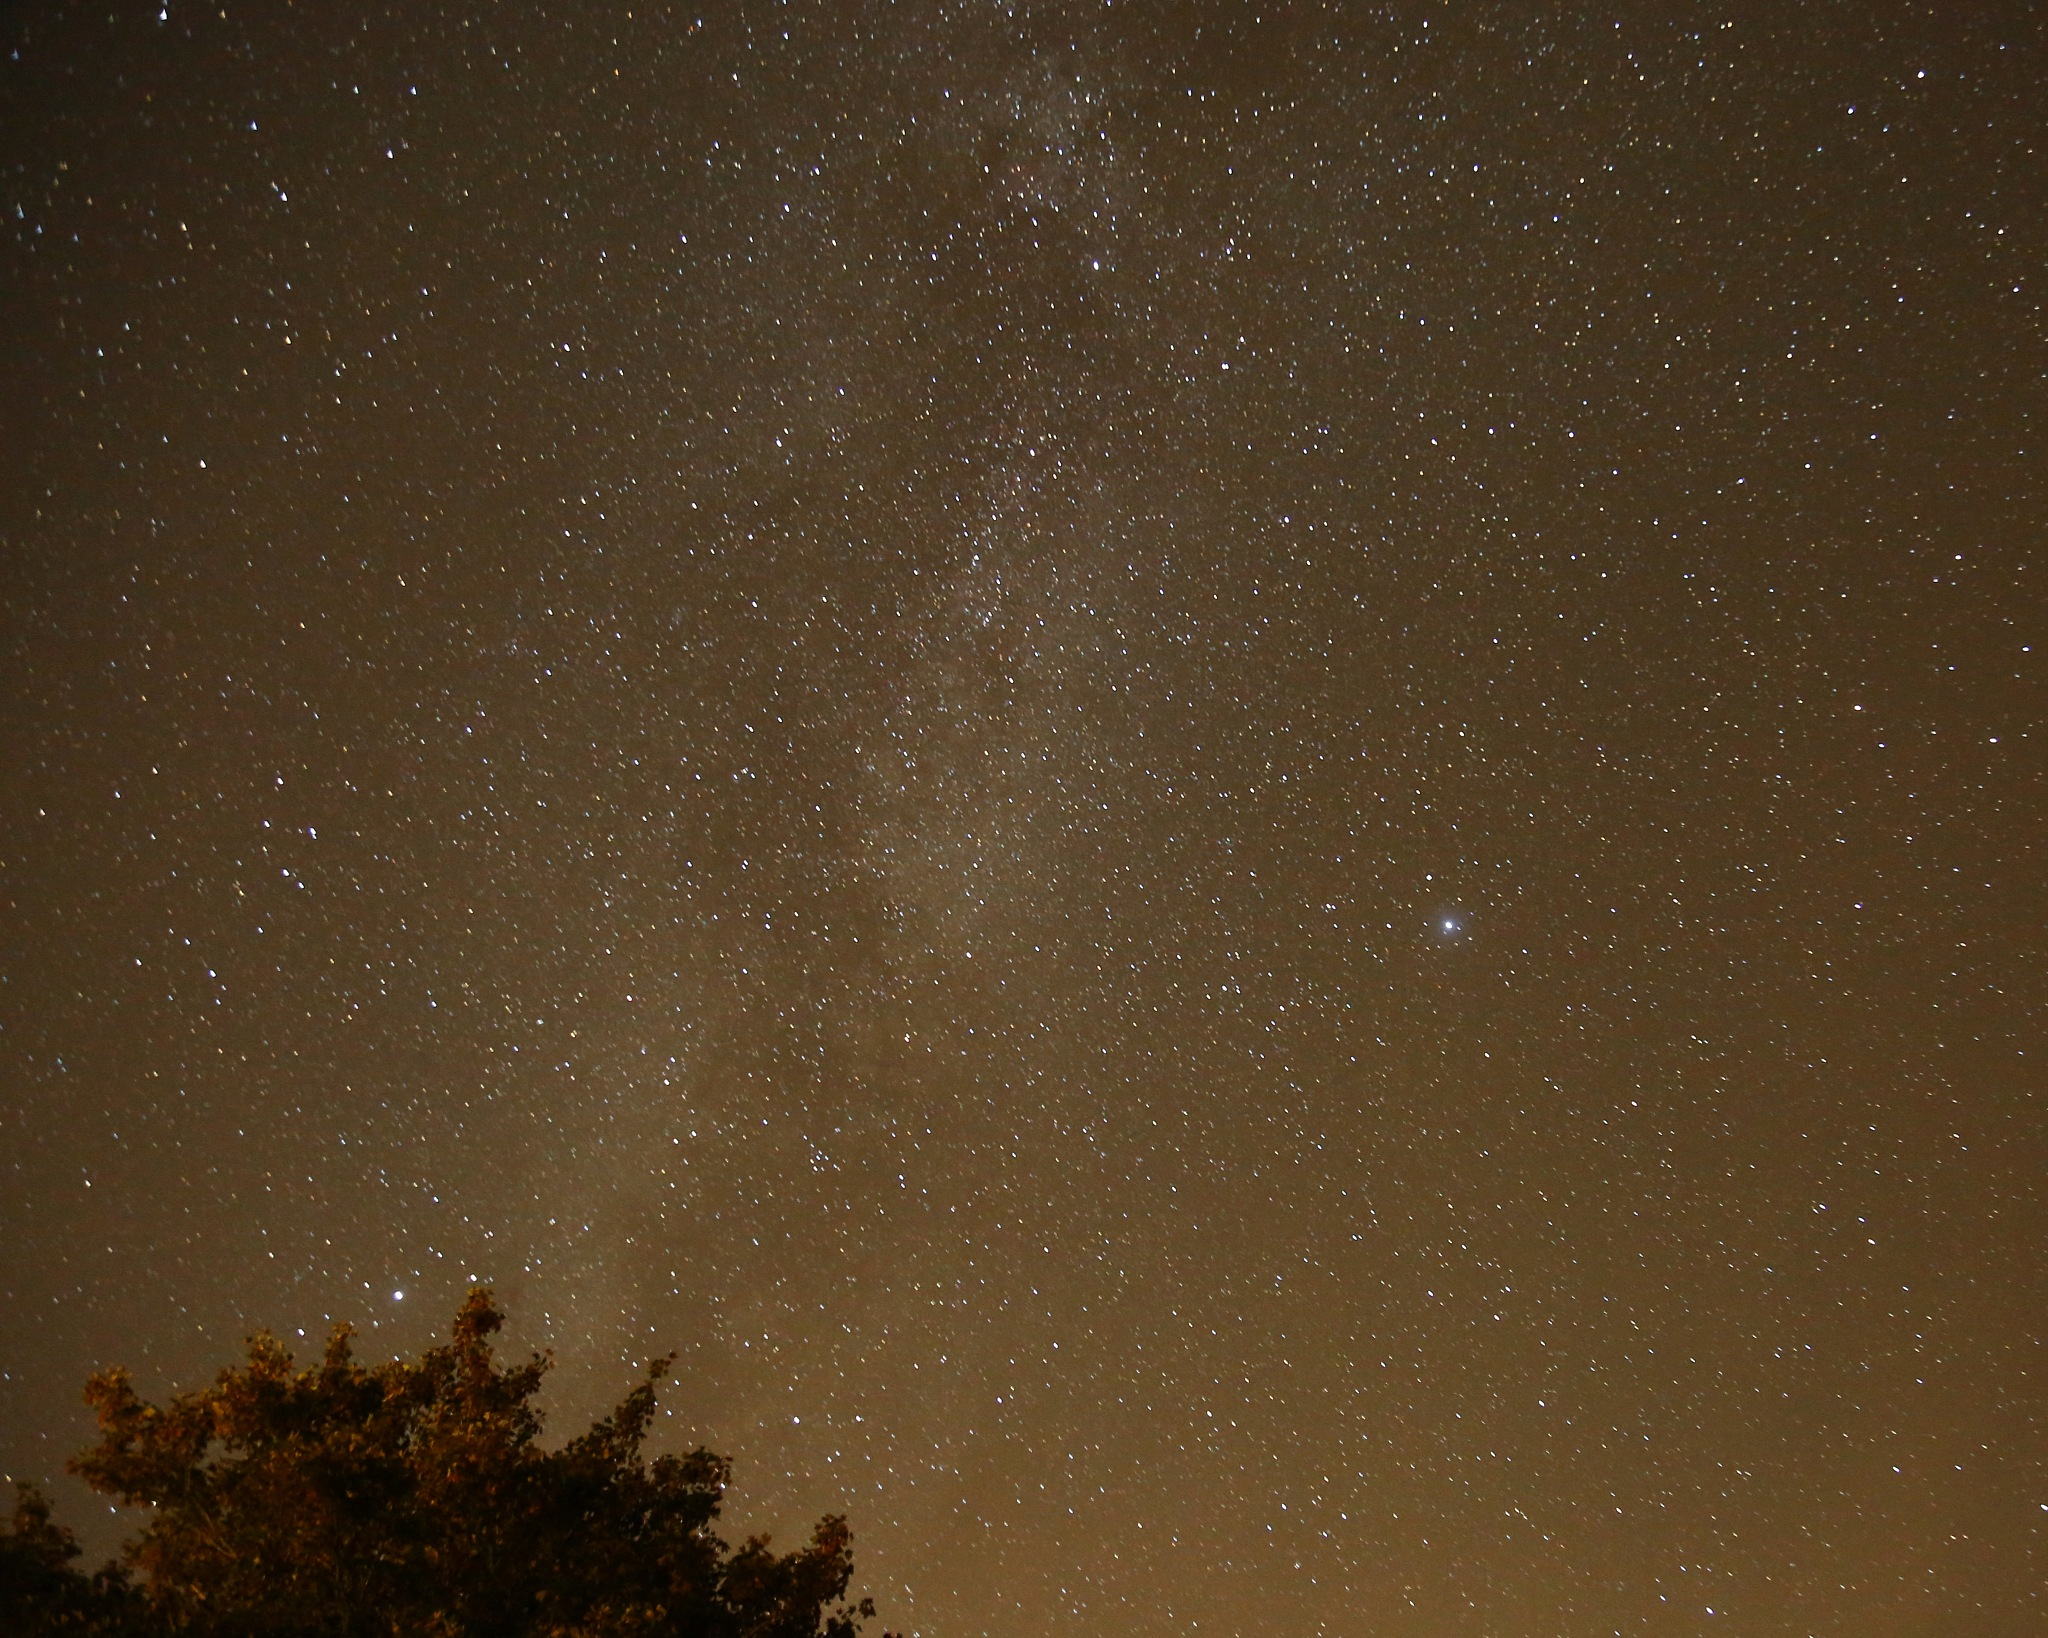 Milkyway by firstsnakeman